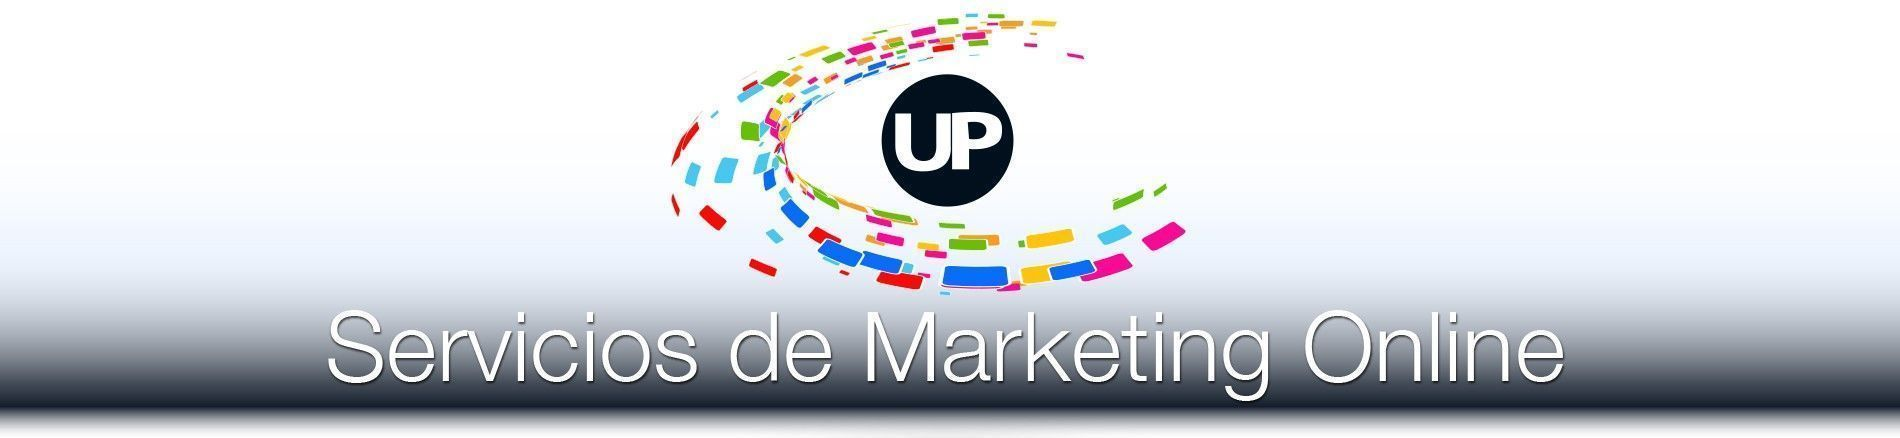 Universal Protocol, Servicios de Marketing online